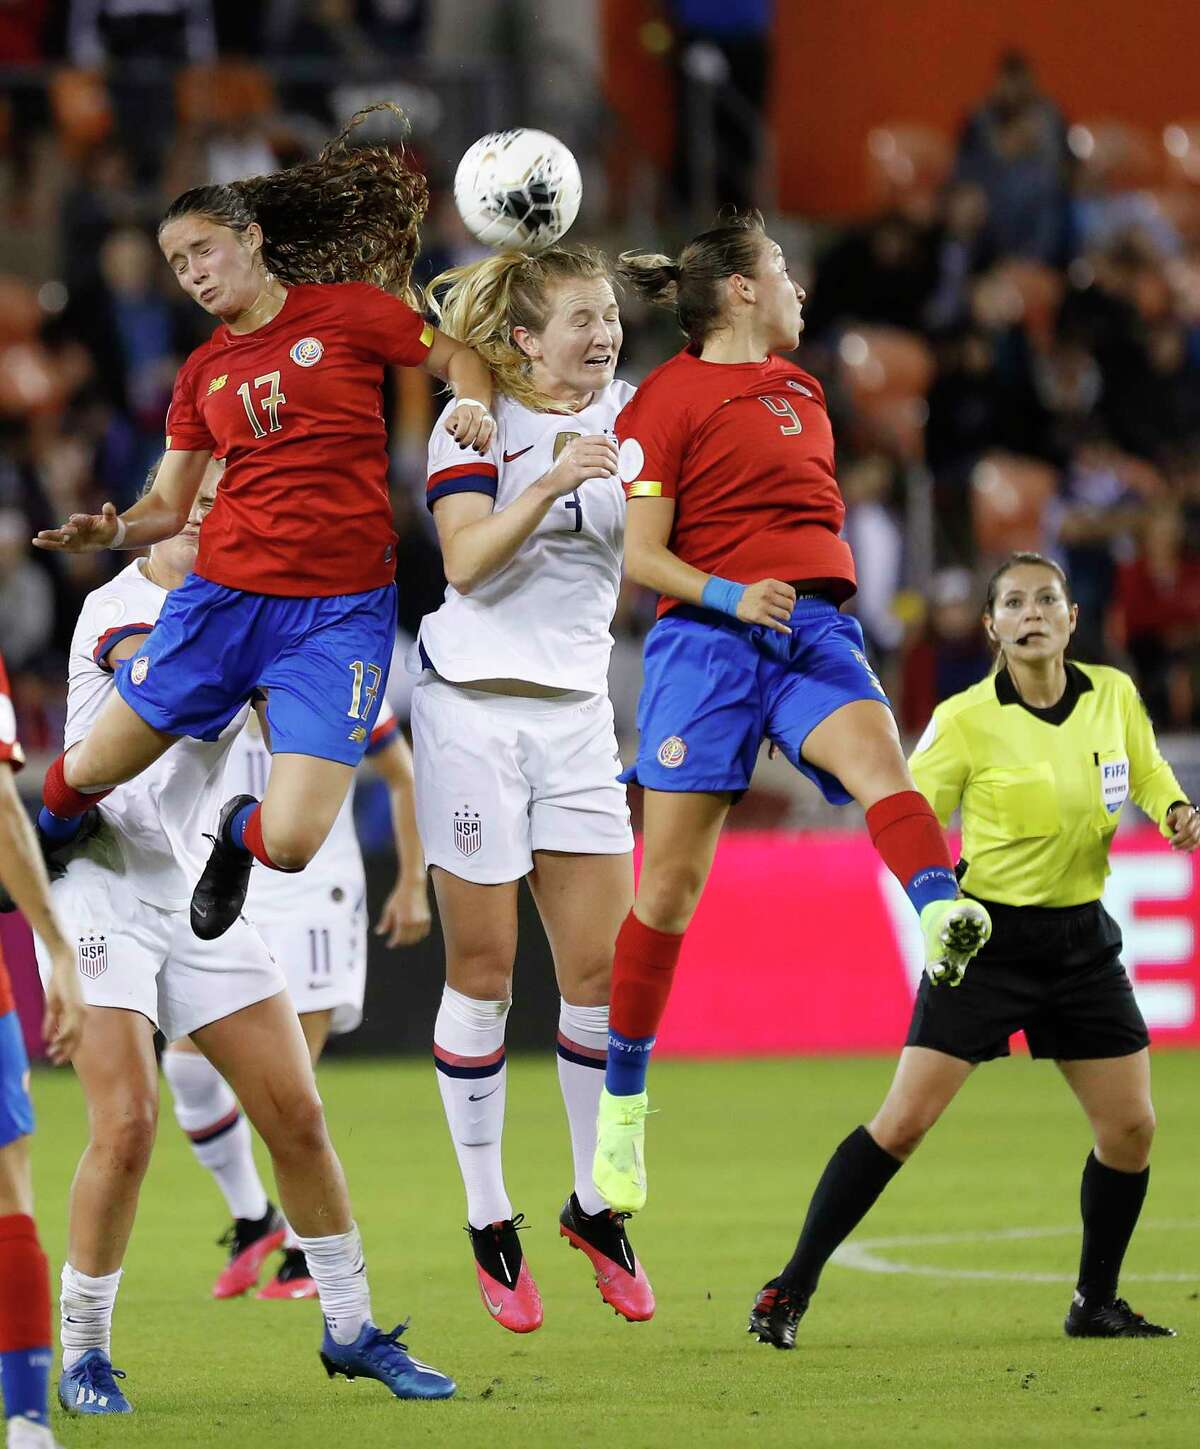 U.S. midfielder Samantha Mewis (3) heads the ball with Costa Rica forward Maria Salas (17) and Costa Rica midfielder Gloriana Villalobos (9) during the first half of the 2020 Concacaf Women's Olympic Qualifying between the United States and Costa Rica at BBVA Stadium in Houston, Monday, Feb. 3, 2020.